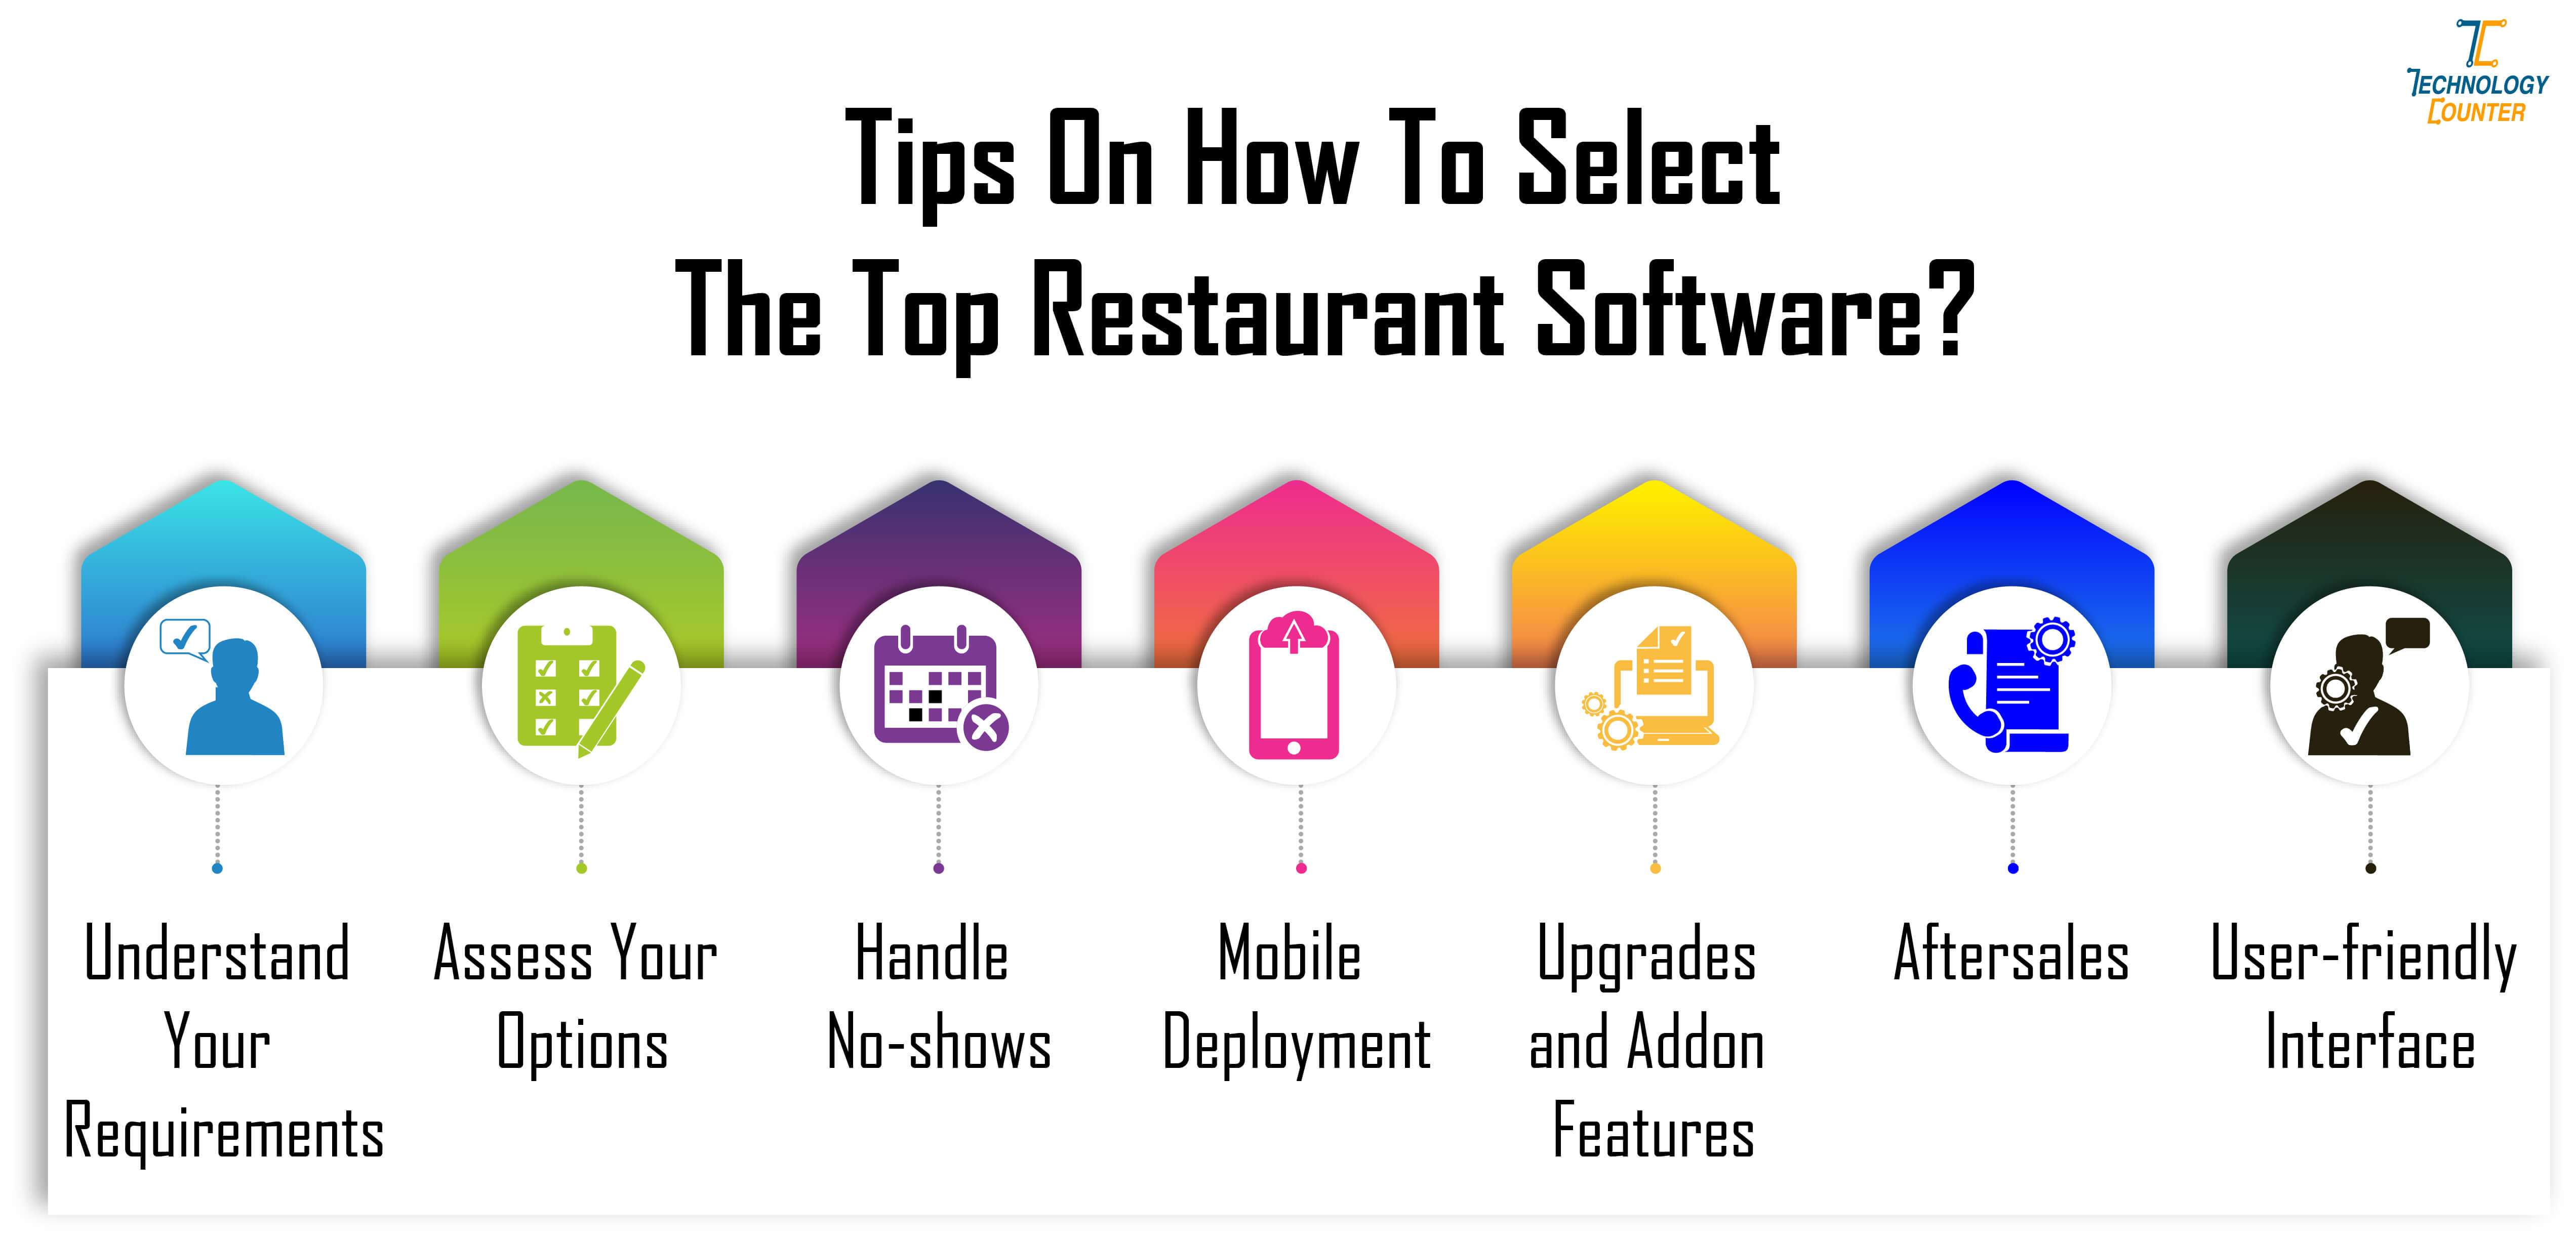 Tips on how to select the top restaurant software